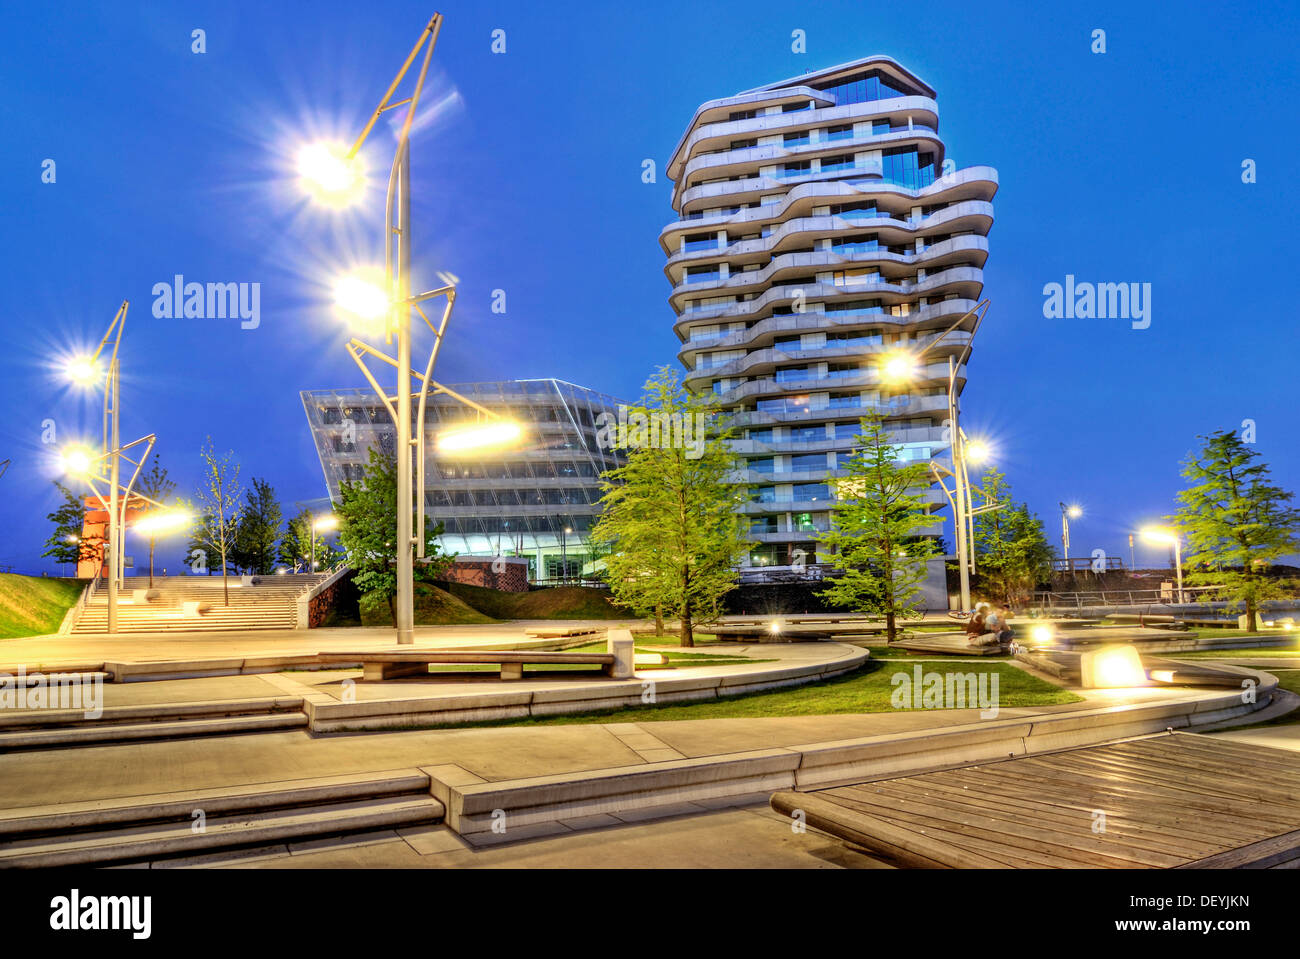 Marco-Polo-Tower, residential highrise at Strandkai, Hafencity quarter, Hamburg - Stock Image